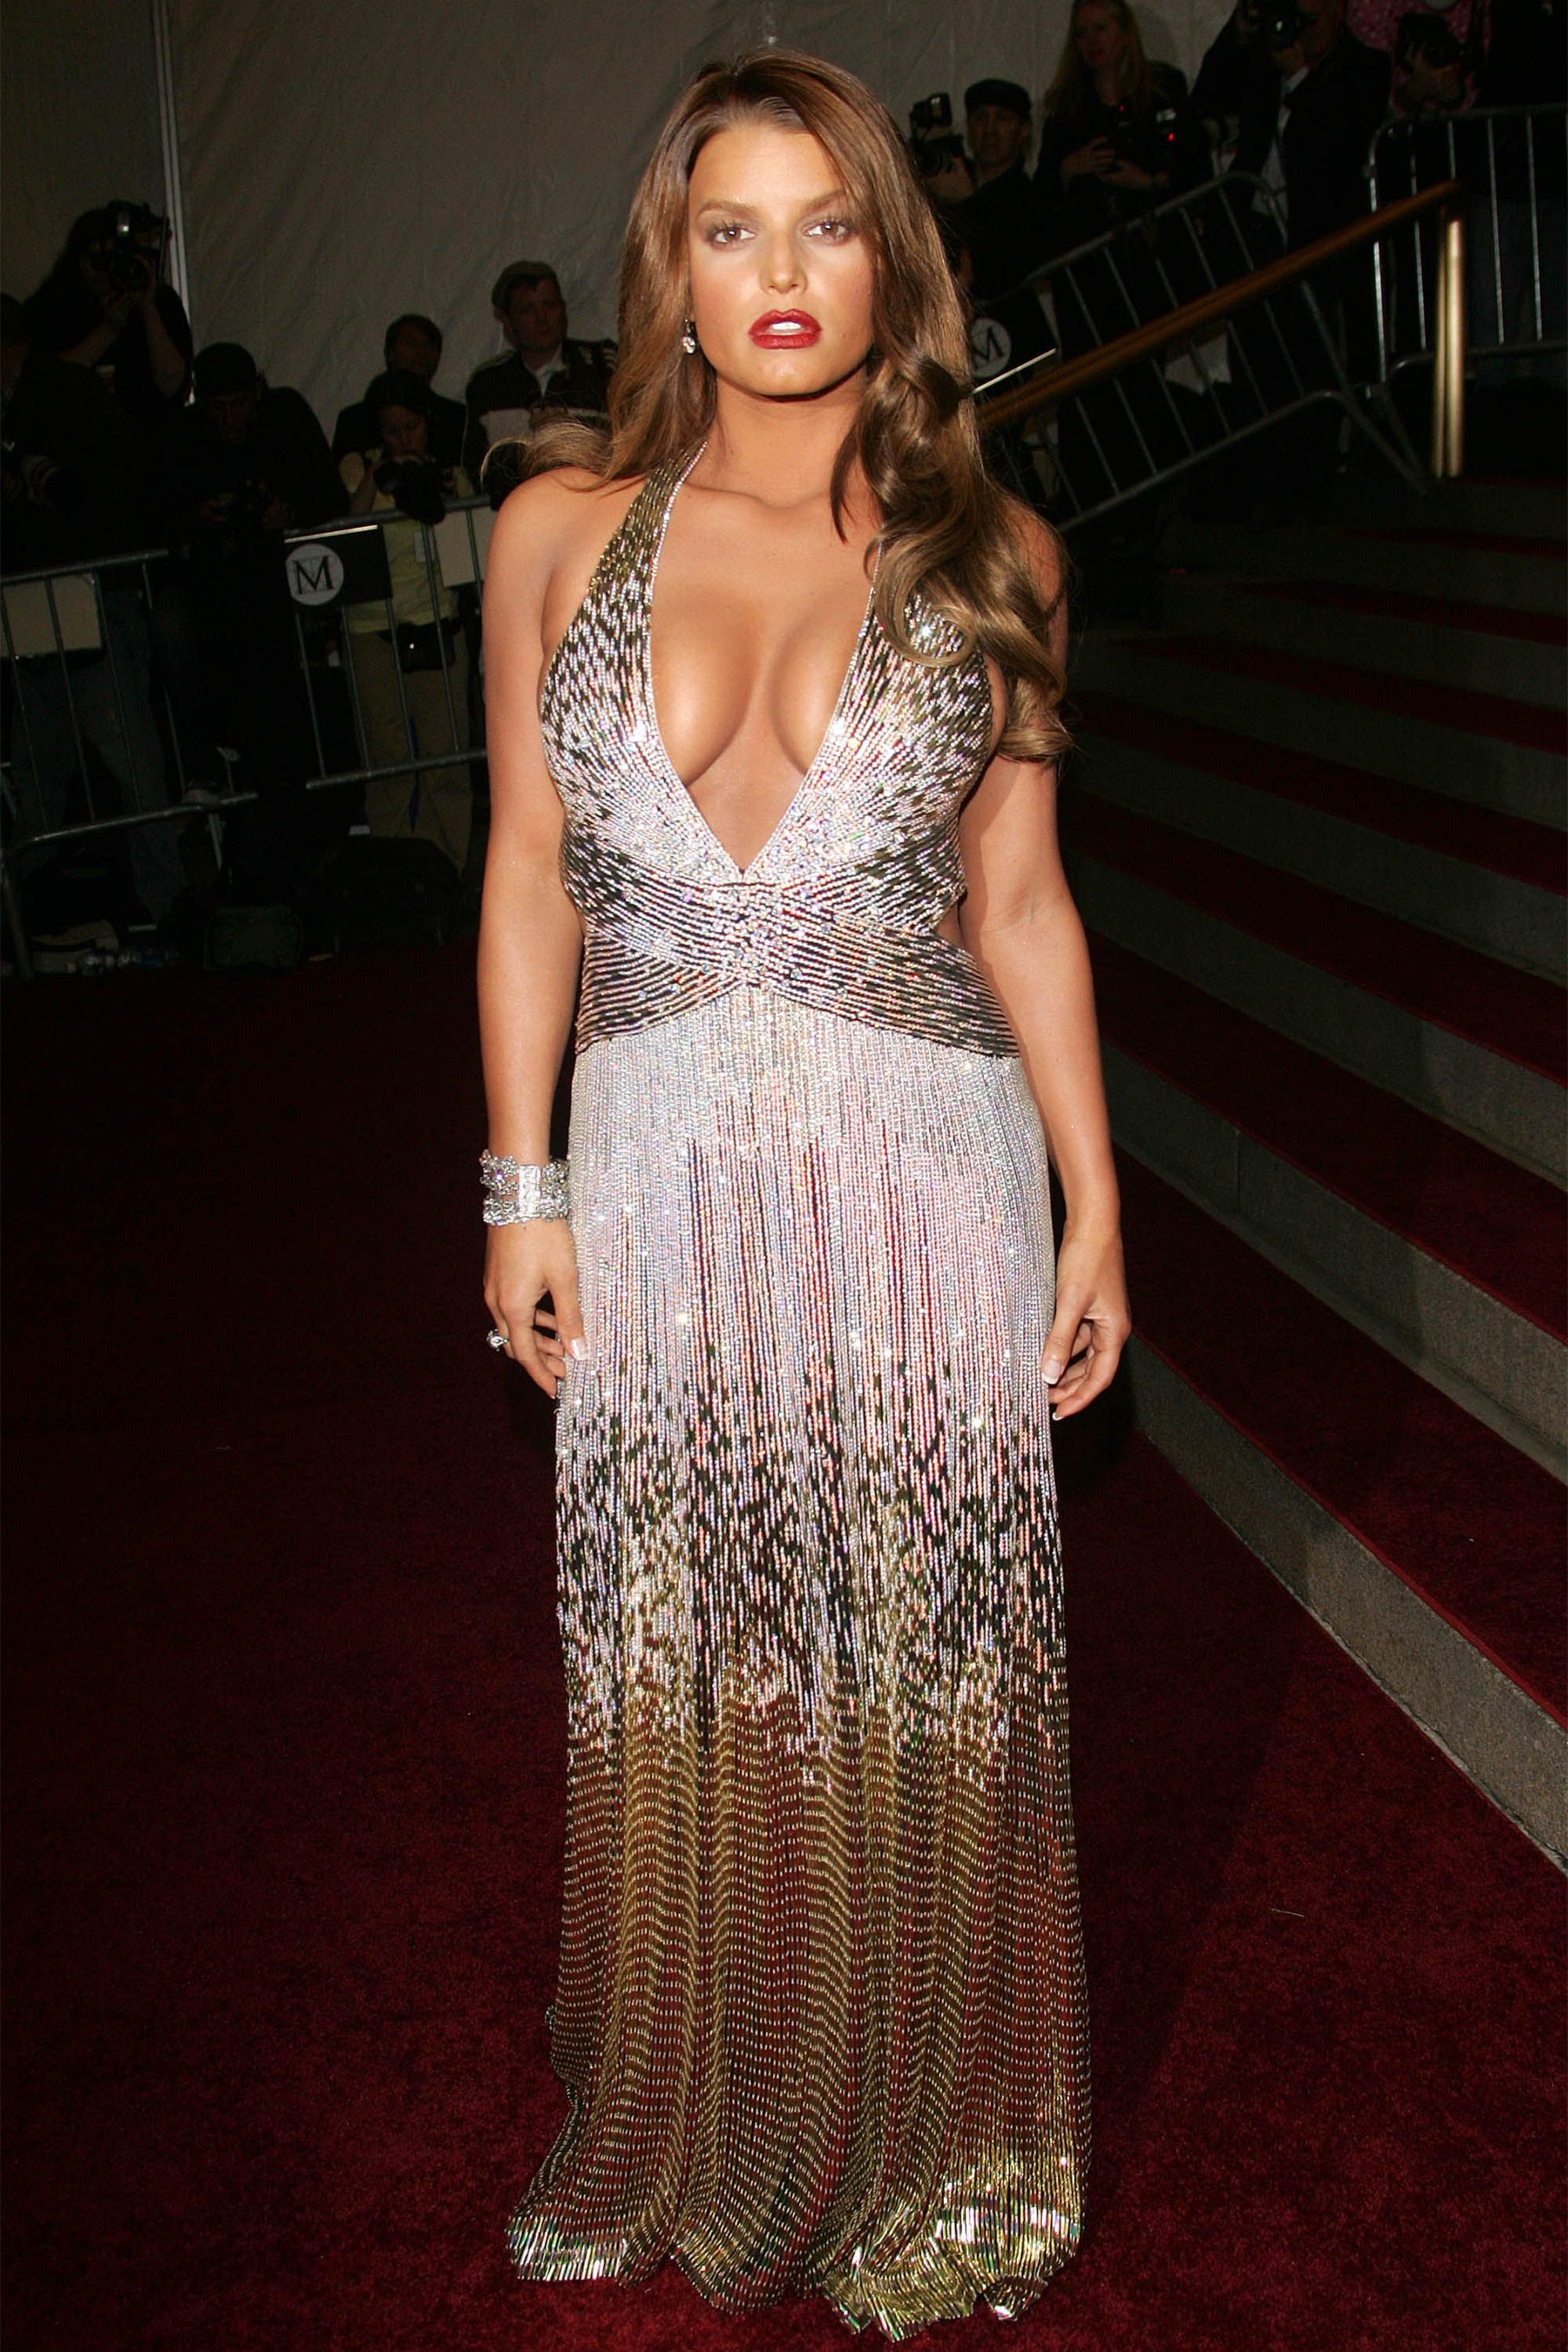 c4d532e8e Sexiest Met Gala Dresses - Celebrities in Sexy Dresses at the Met Gala